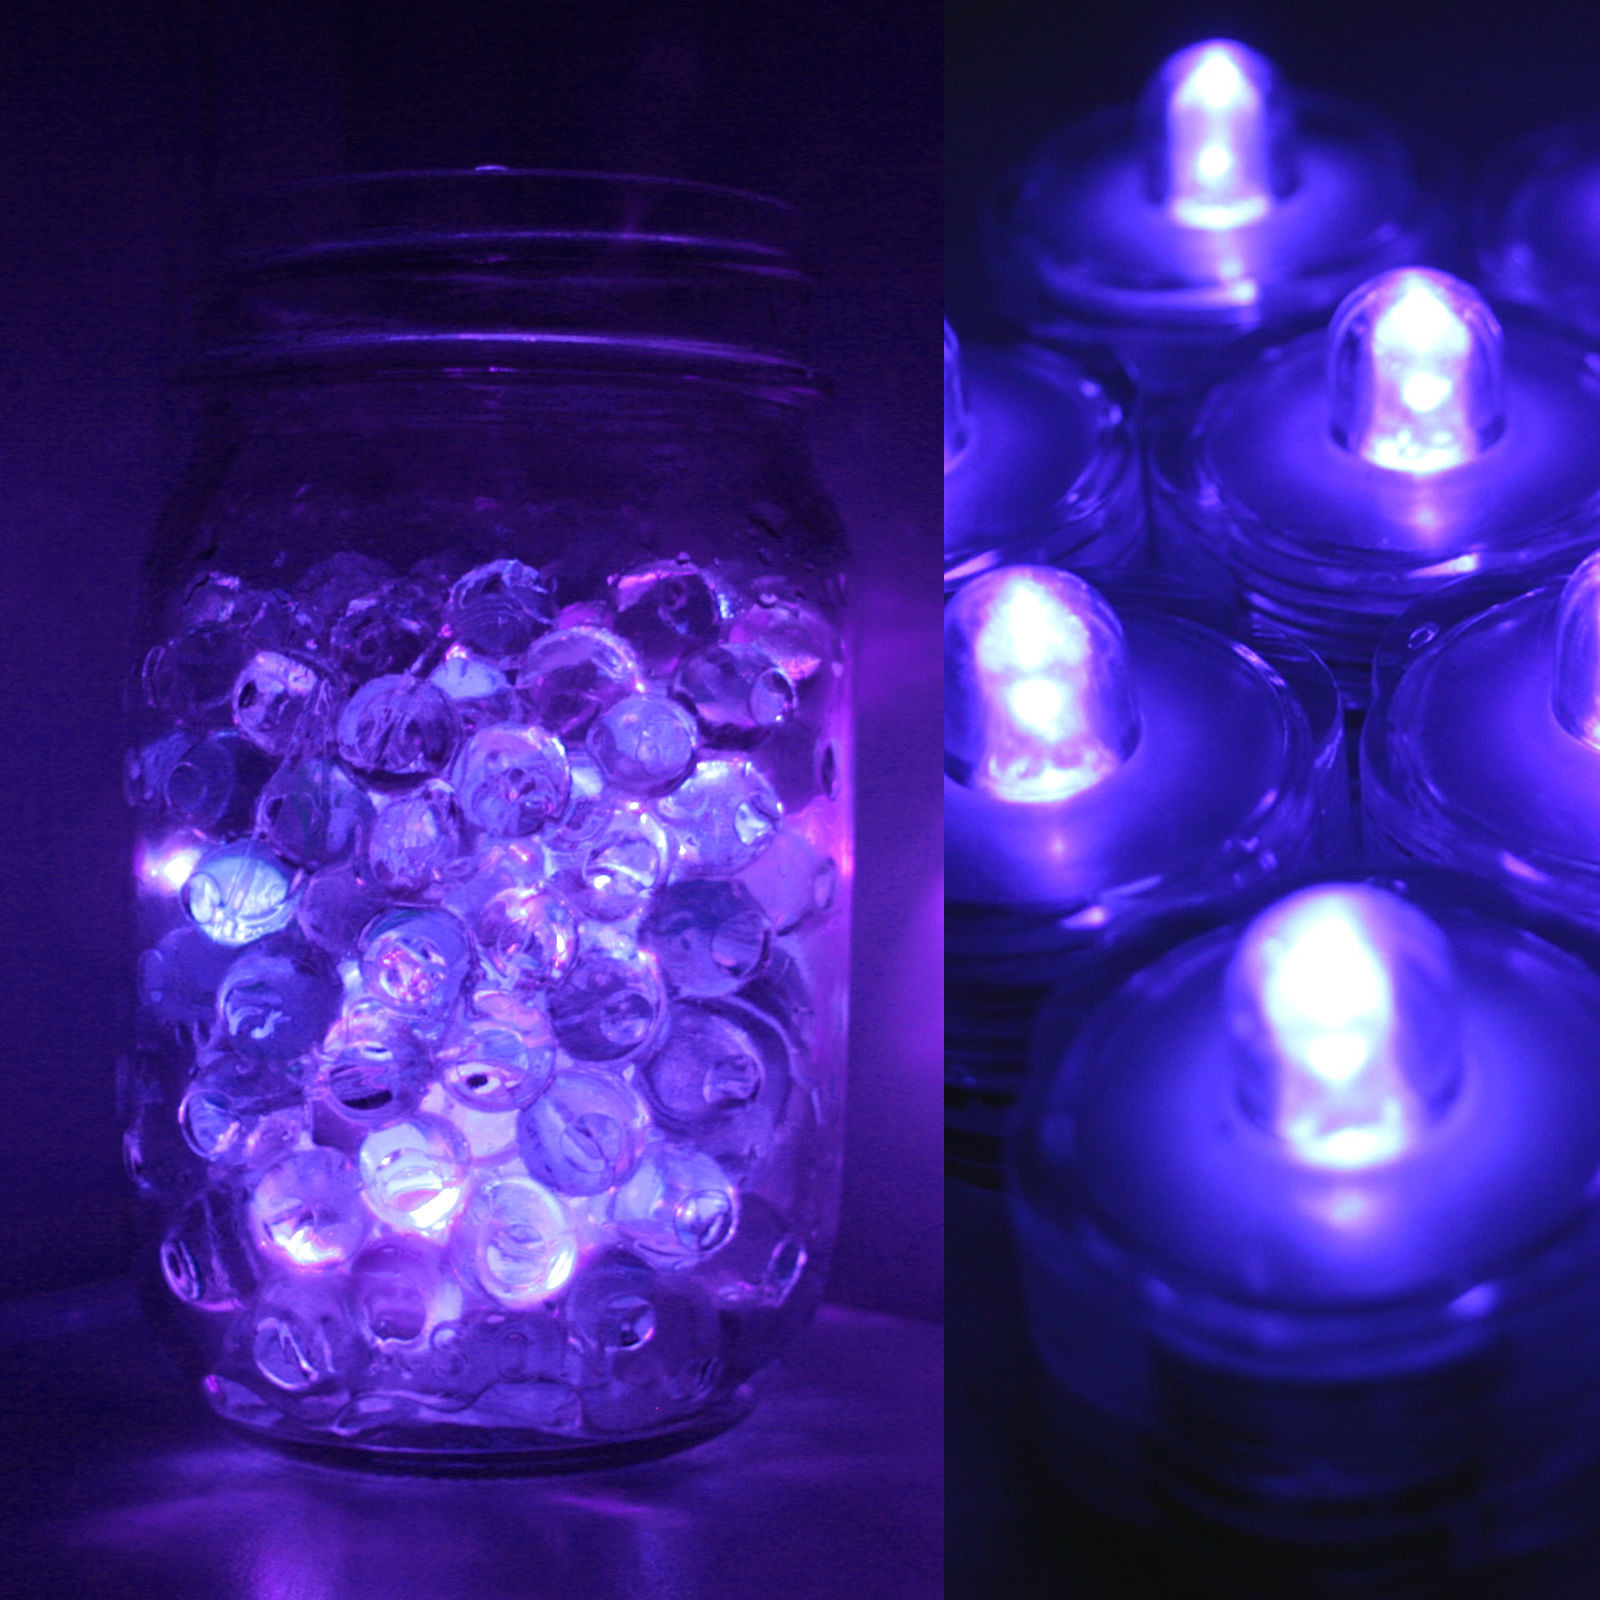 Eastland Cylinder Vase Set Of 24 Pack Purple Submersible Waterproof Underwater Battery Led Tea Throughout 24 Pack Purple Submersible Waterproof Underwater Battery Led Tea Light Wedding Ebay